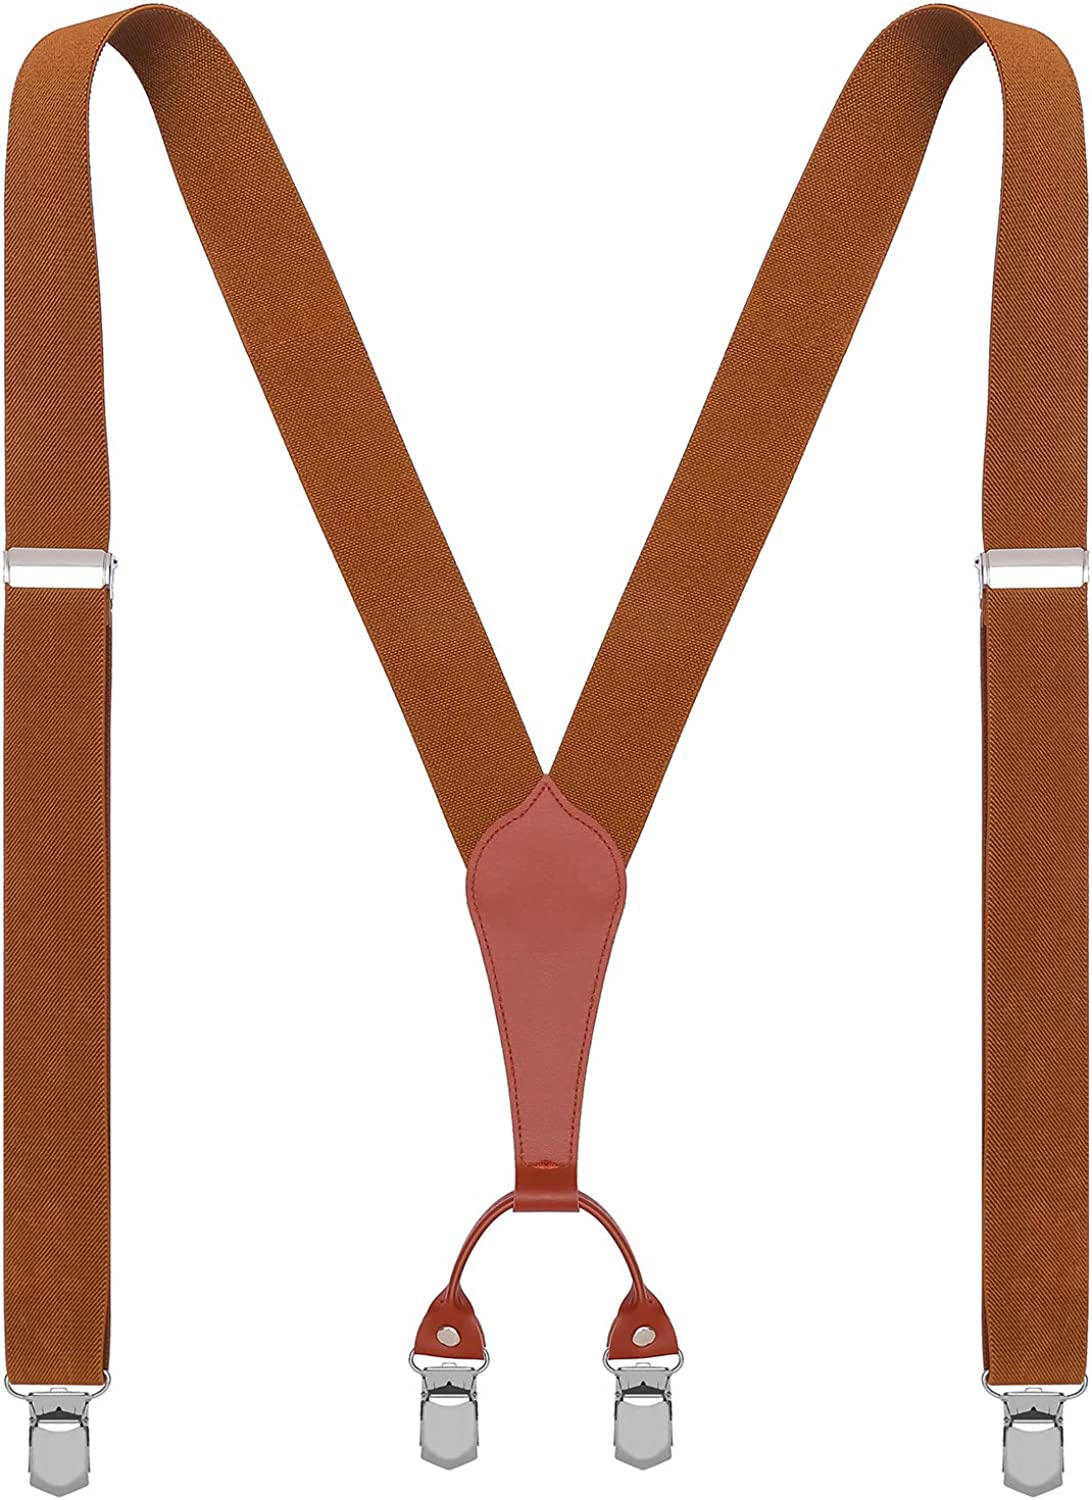 WDSKY Mens Suspenders Wide Heavy Duty Adjustable with 4 Clips